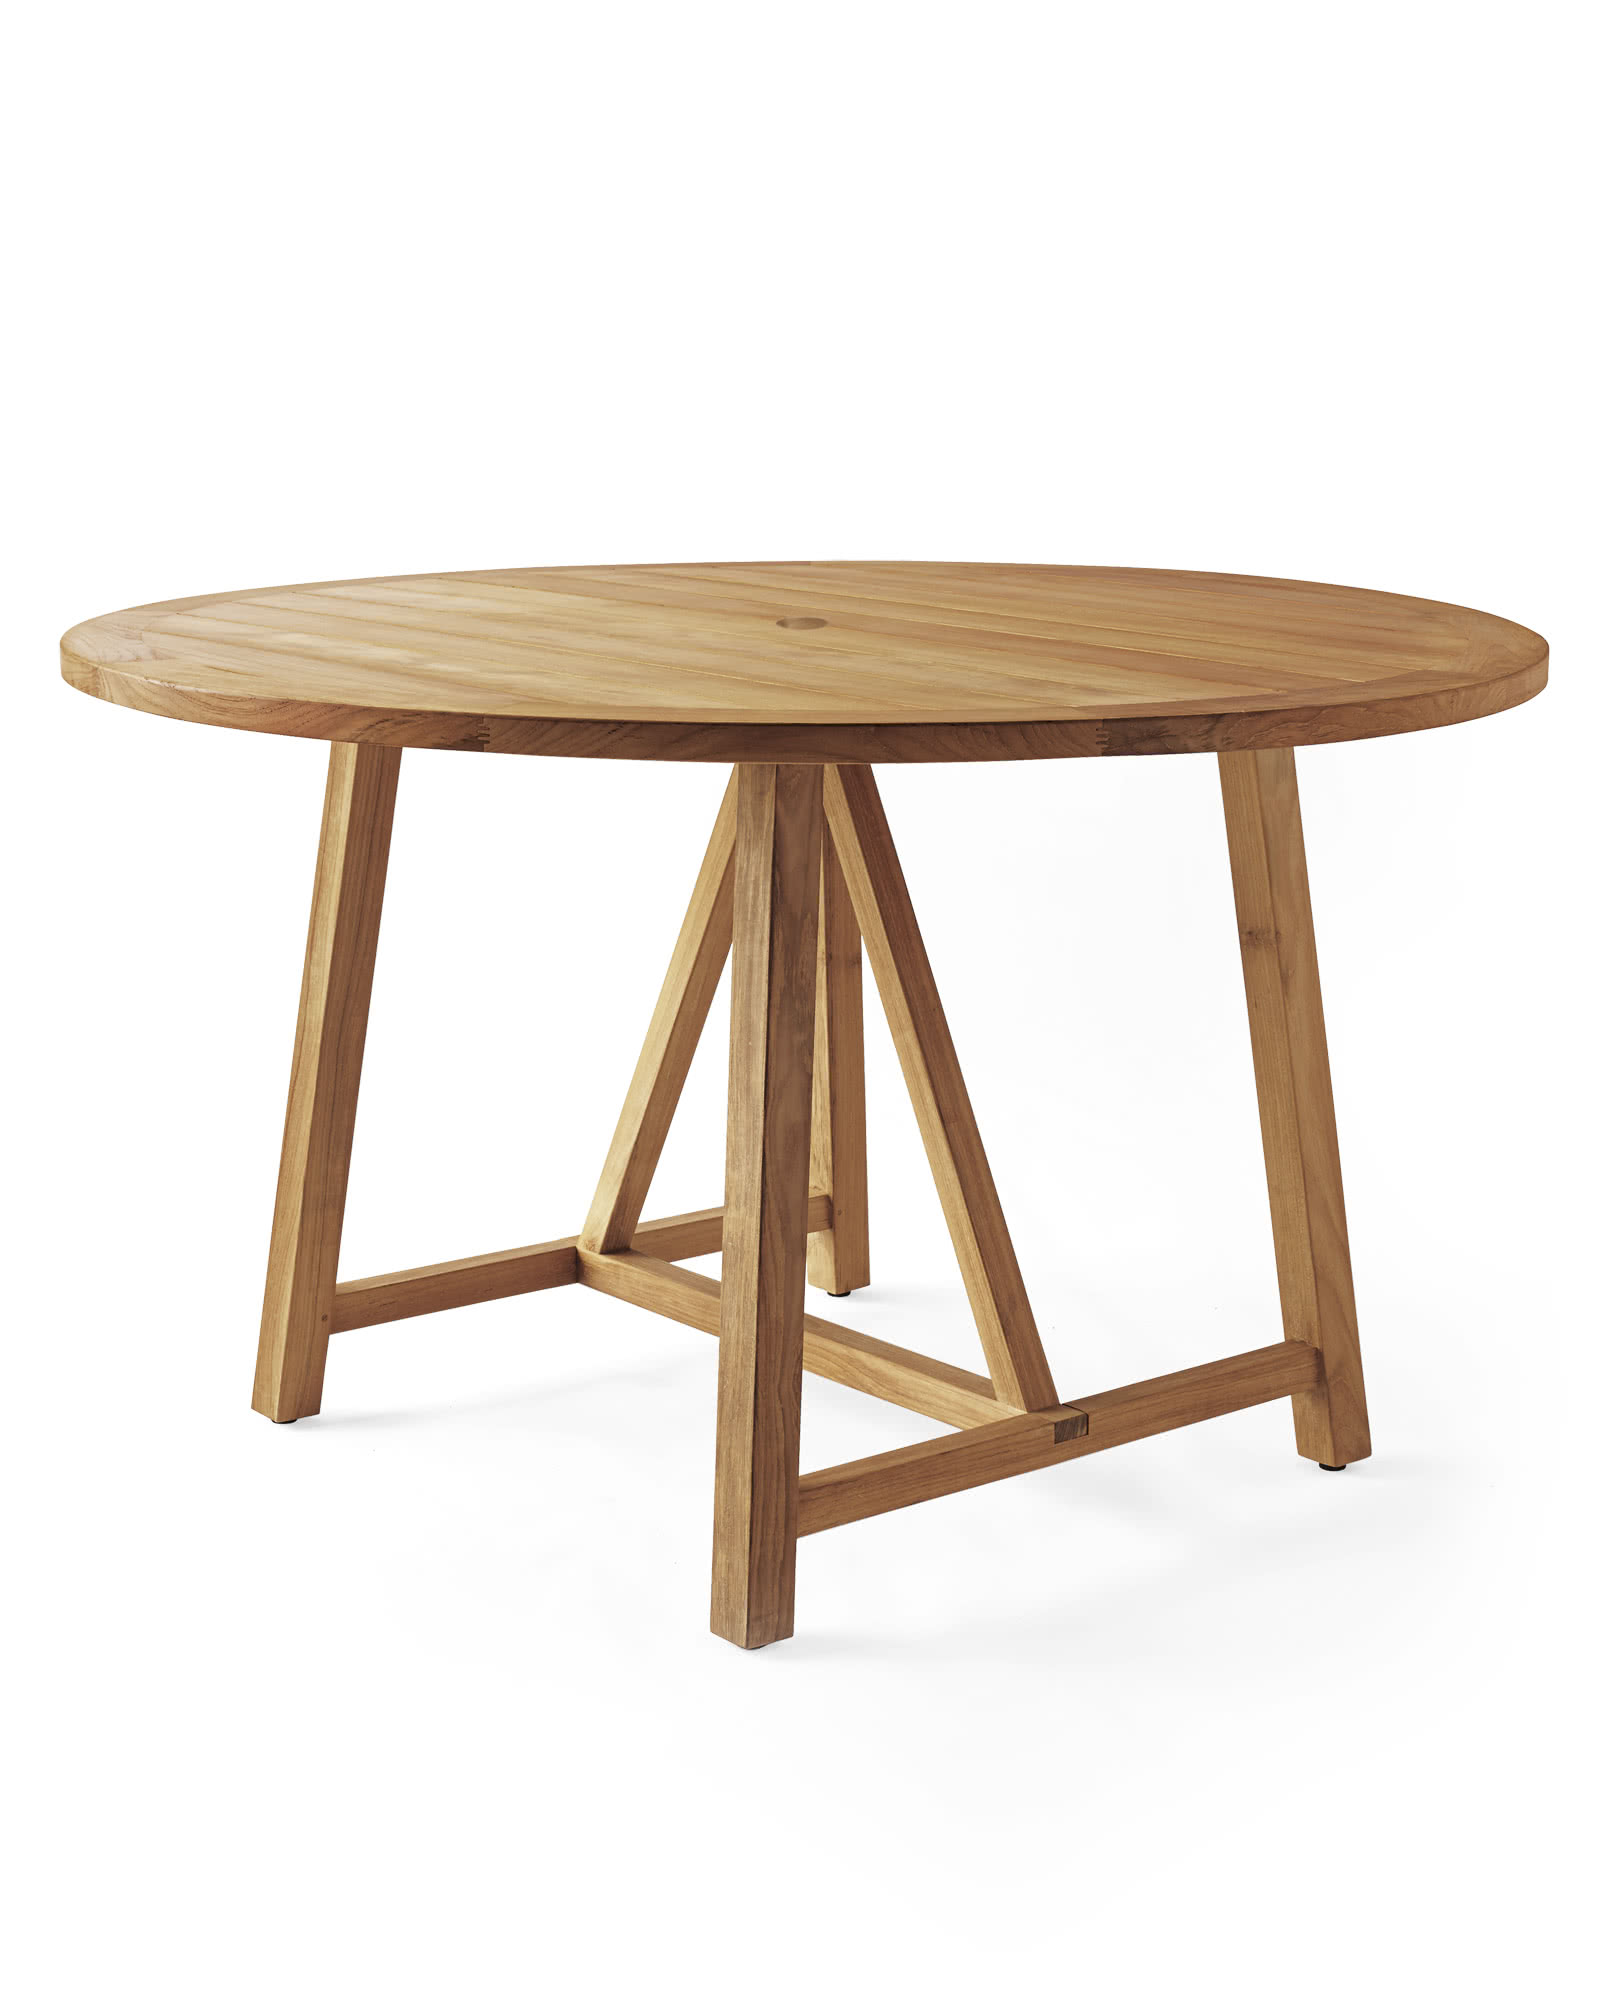 Crosby Teak Round Dining Table Natural Serena Lily